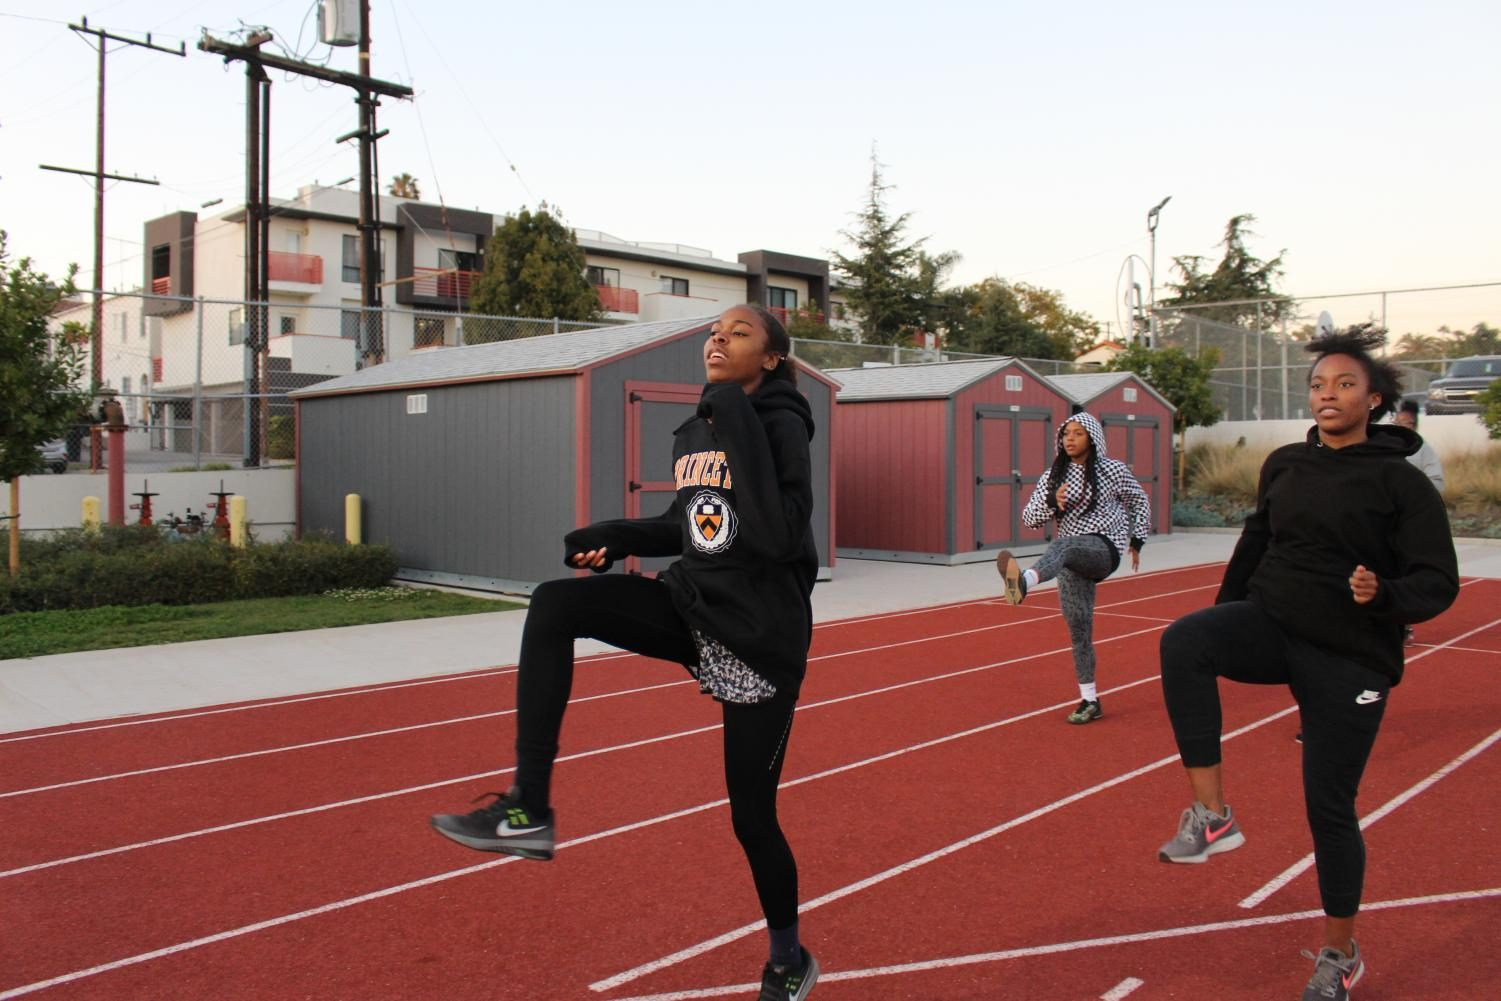 Nia Mosby, Giana Parks and Hailey Adams warm up during one of their after school practices. The entire team feels